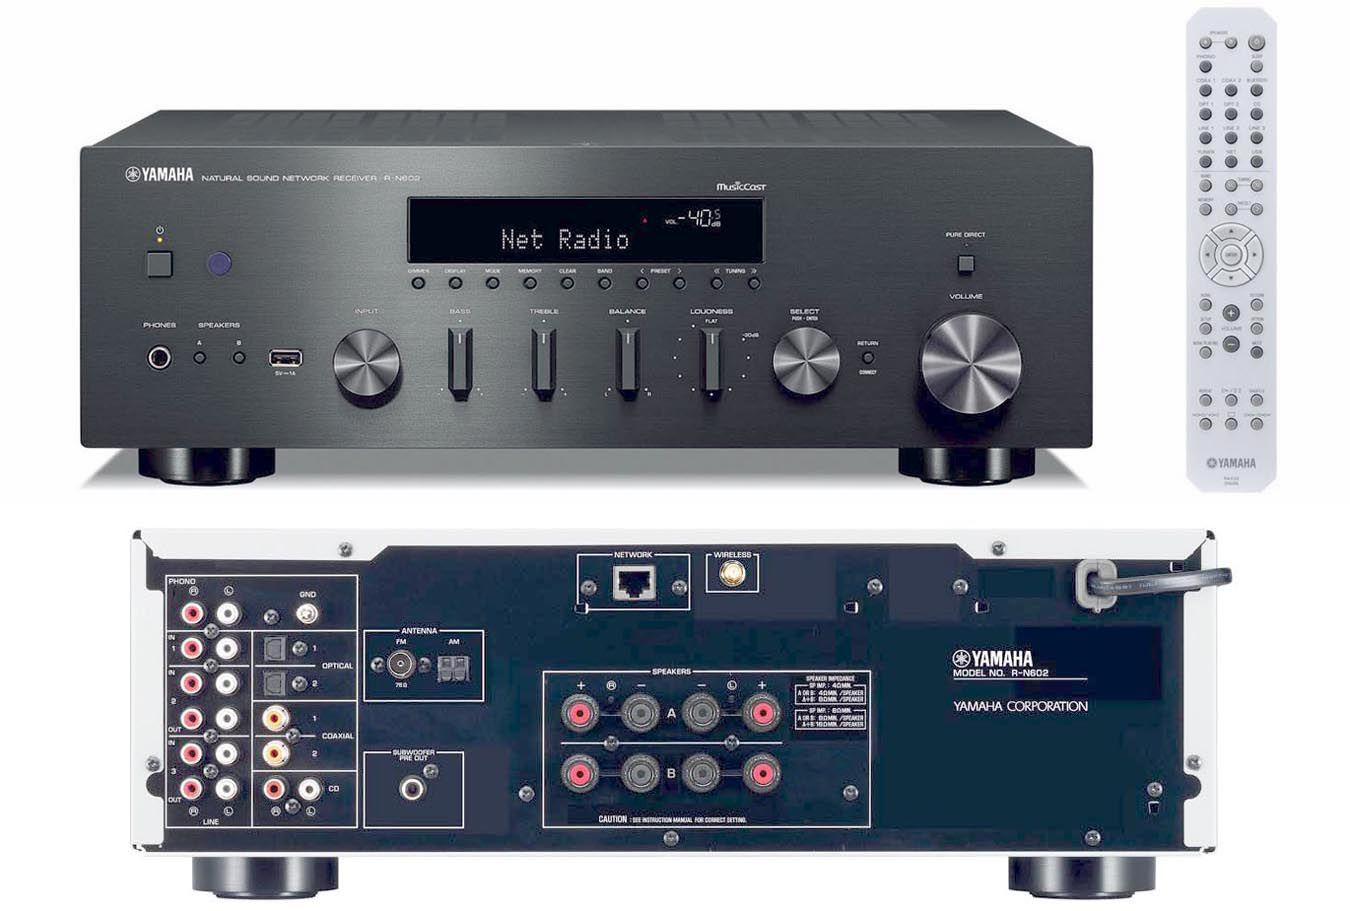 The Best Two Channel Stereo Receivers To Buy In 2019 Multi Surround Sound Systems For Room Use Yamaha R N602 Receiver With Musiccast